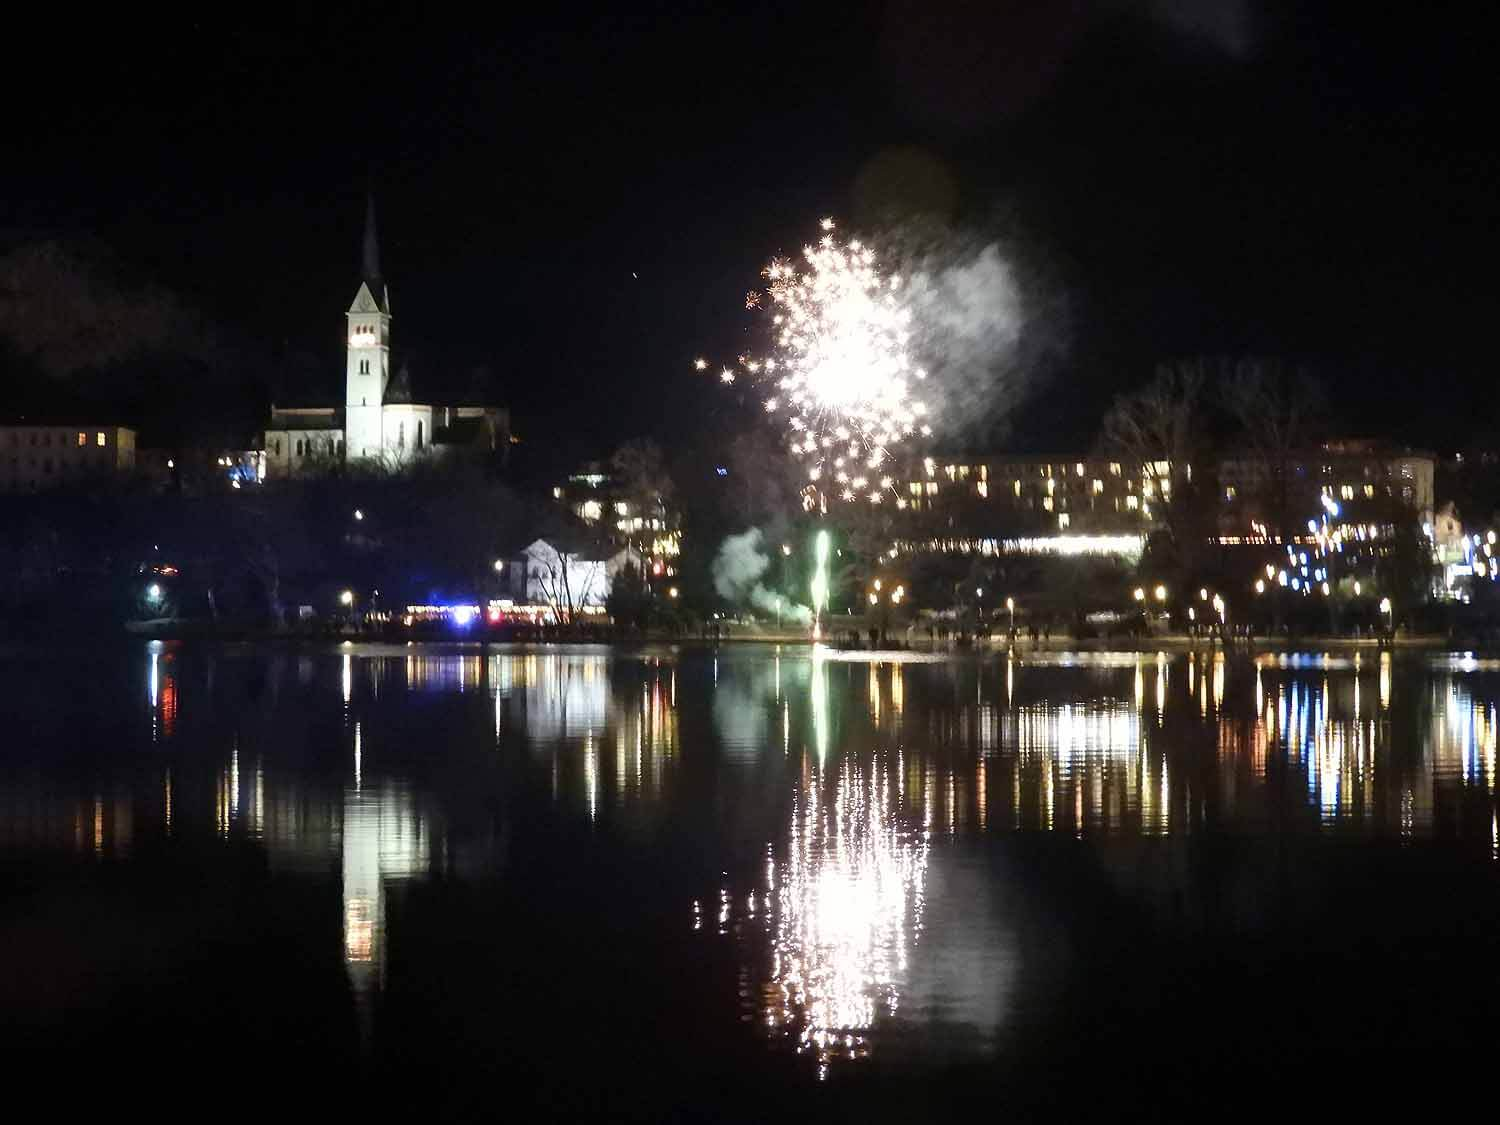 slovenia-lake-bled-new-years-eve-fireworks-church-reflection-midnight.jpg